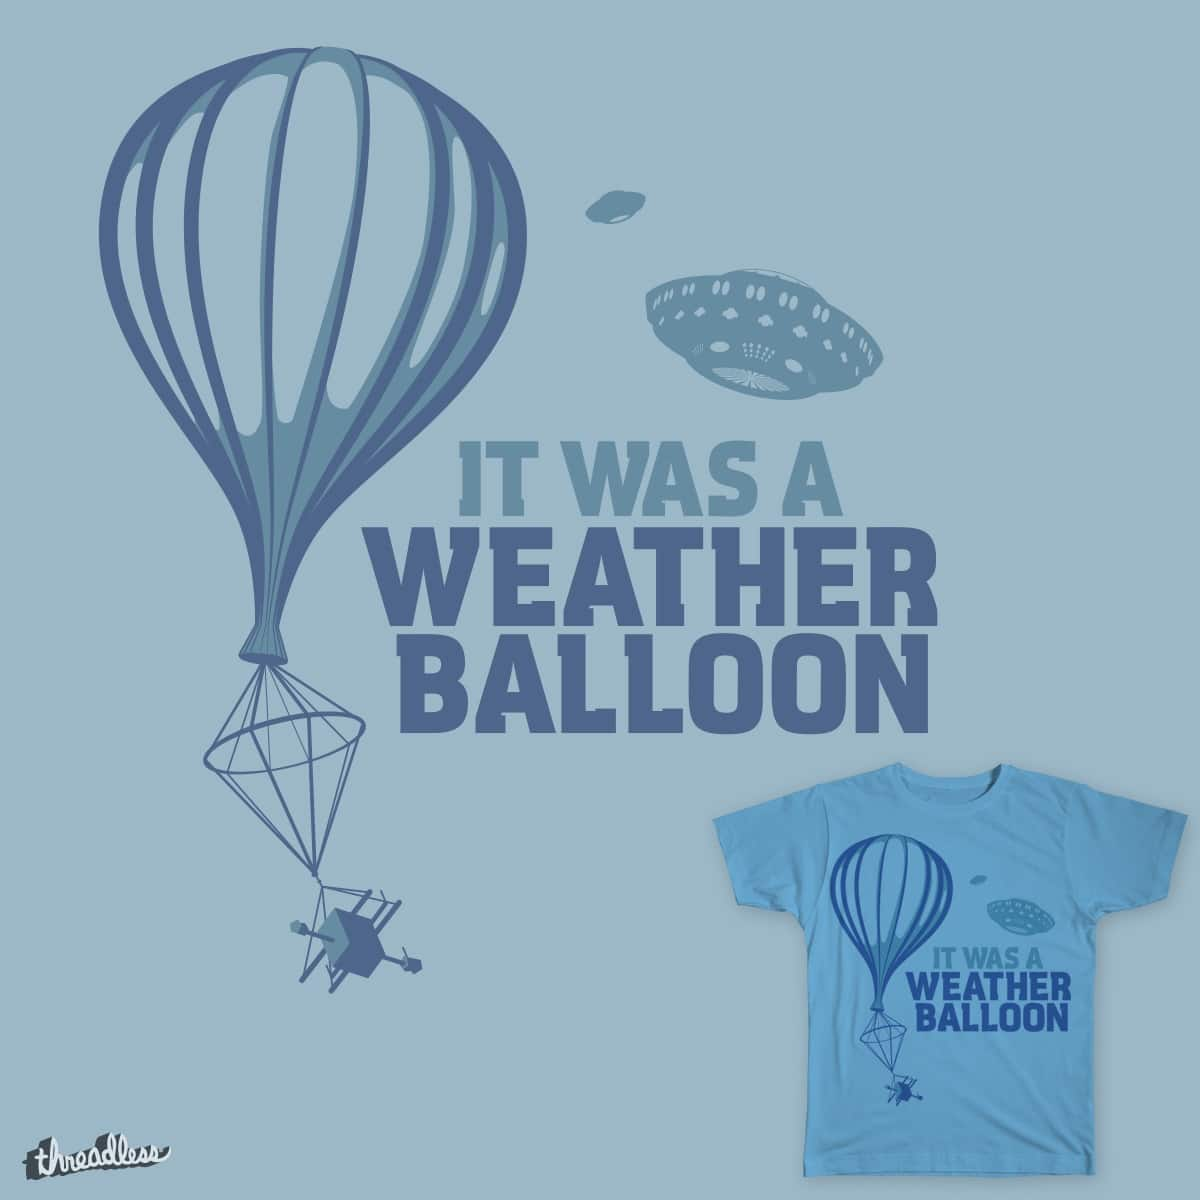 Weather Balloons by carlhuber on Threadless